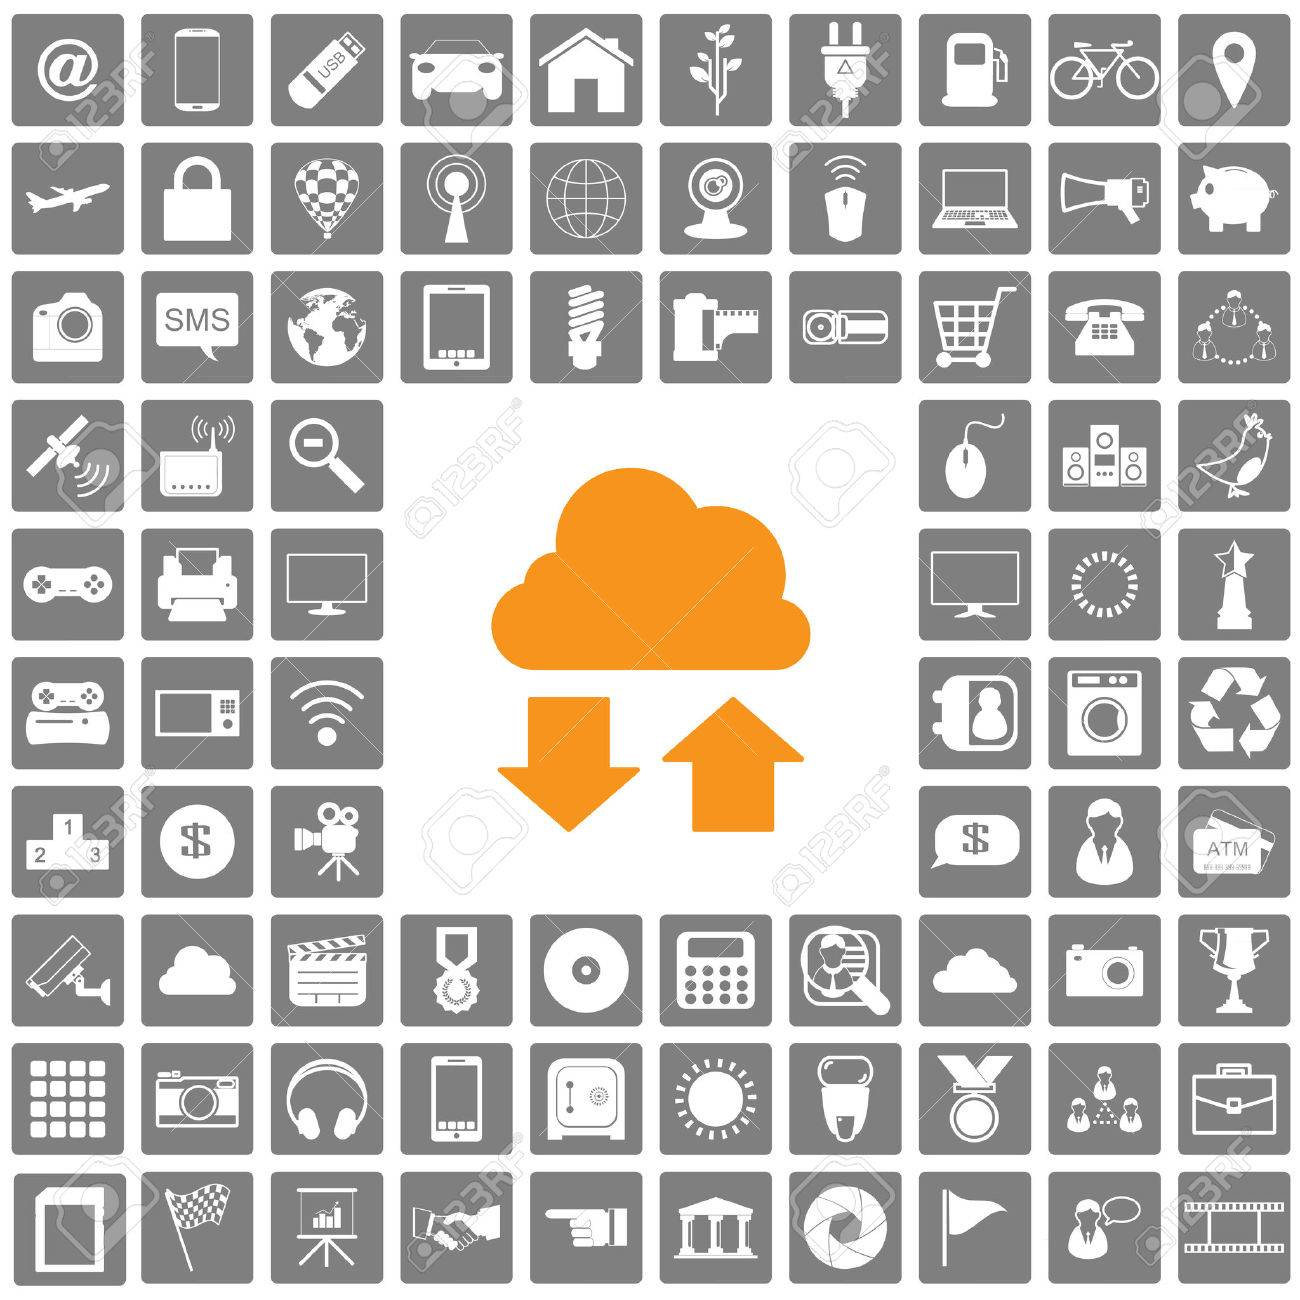 icons web set Stock Vector - 22455881